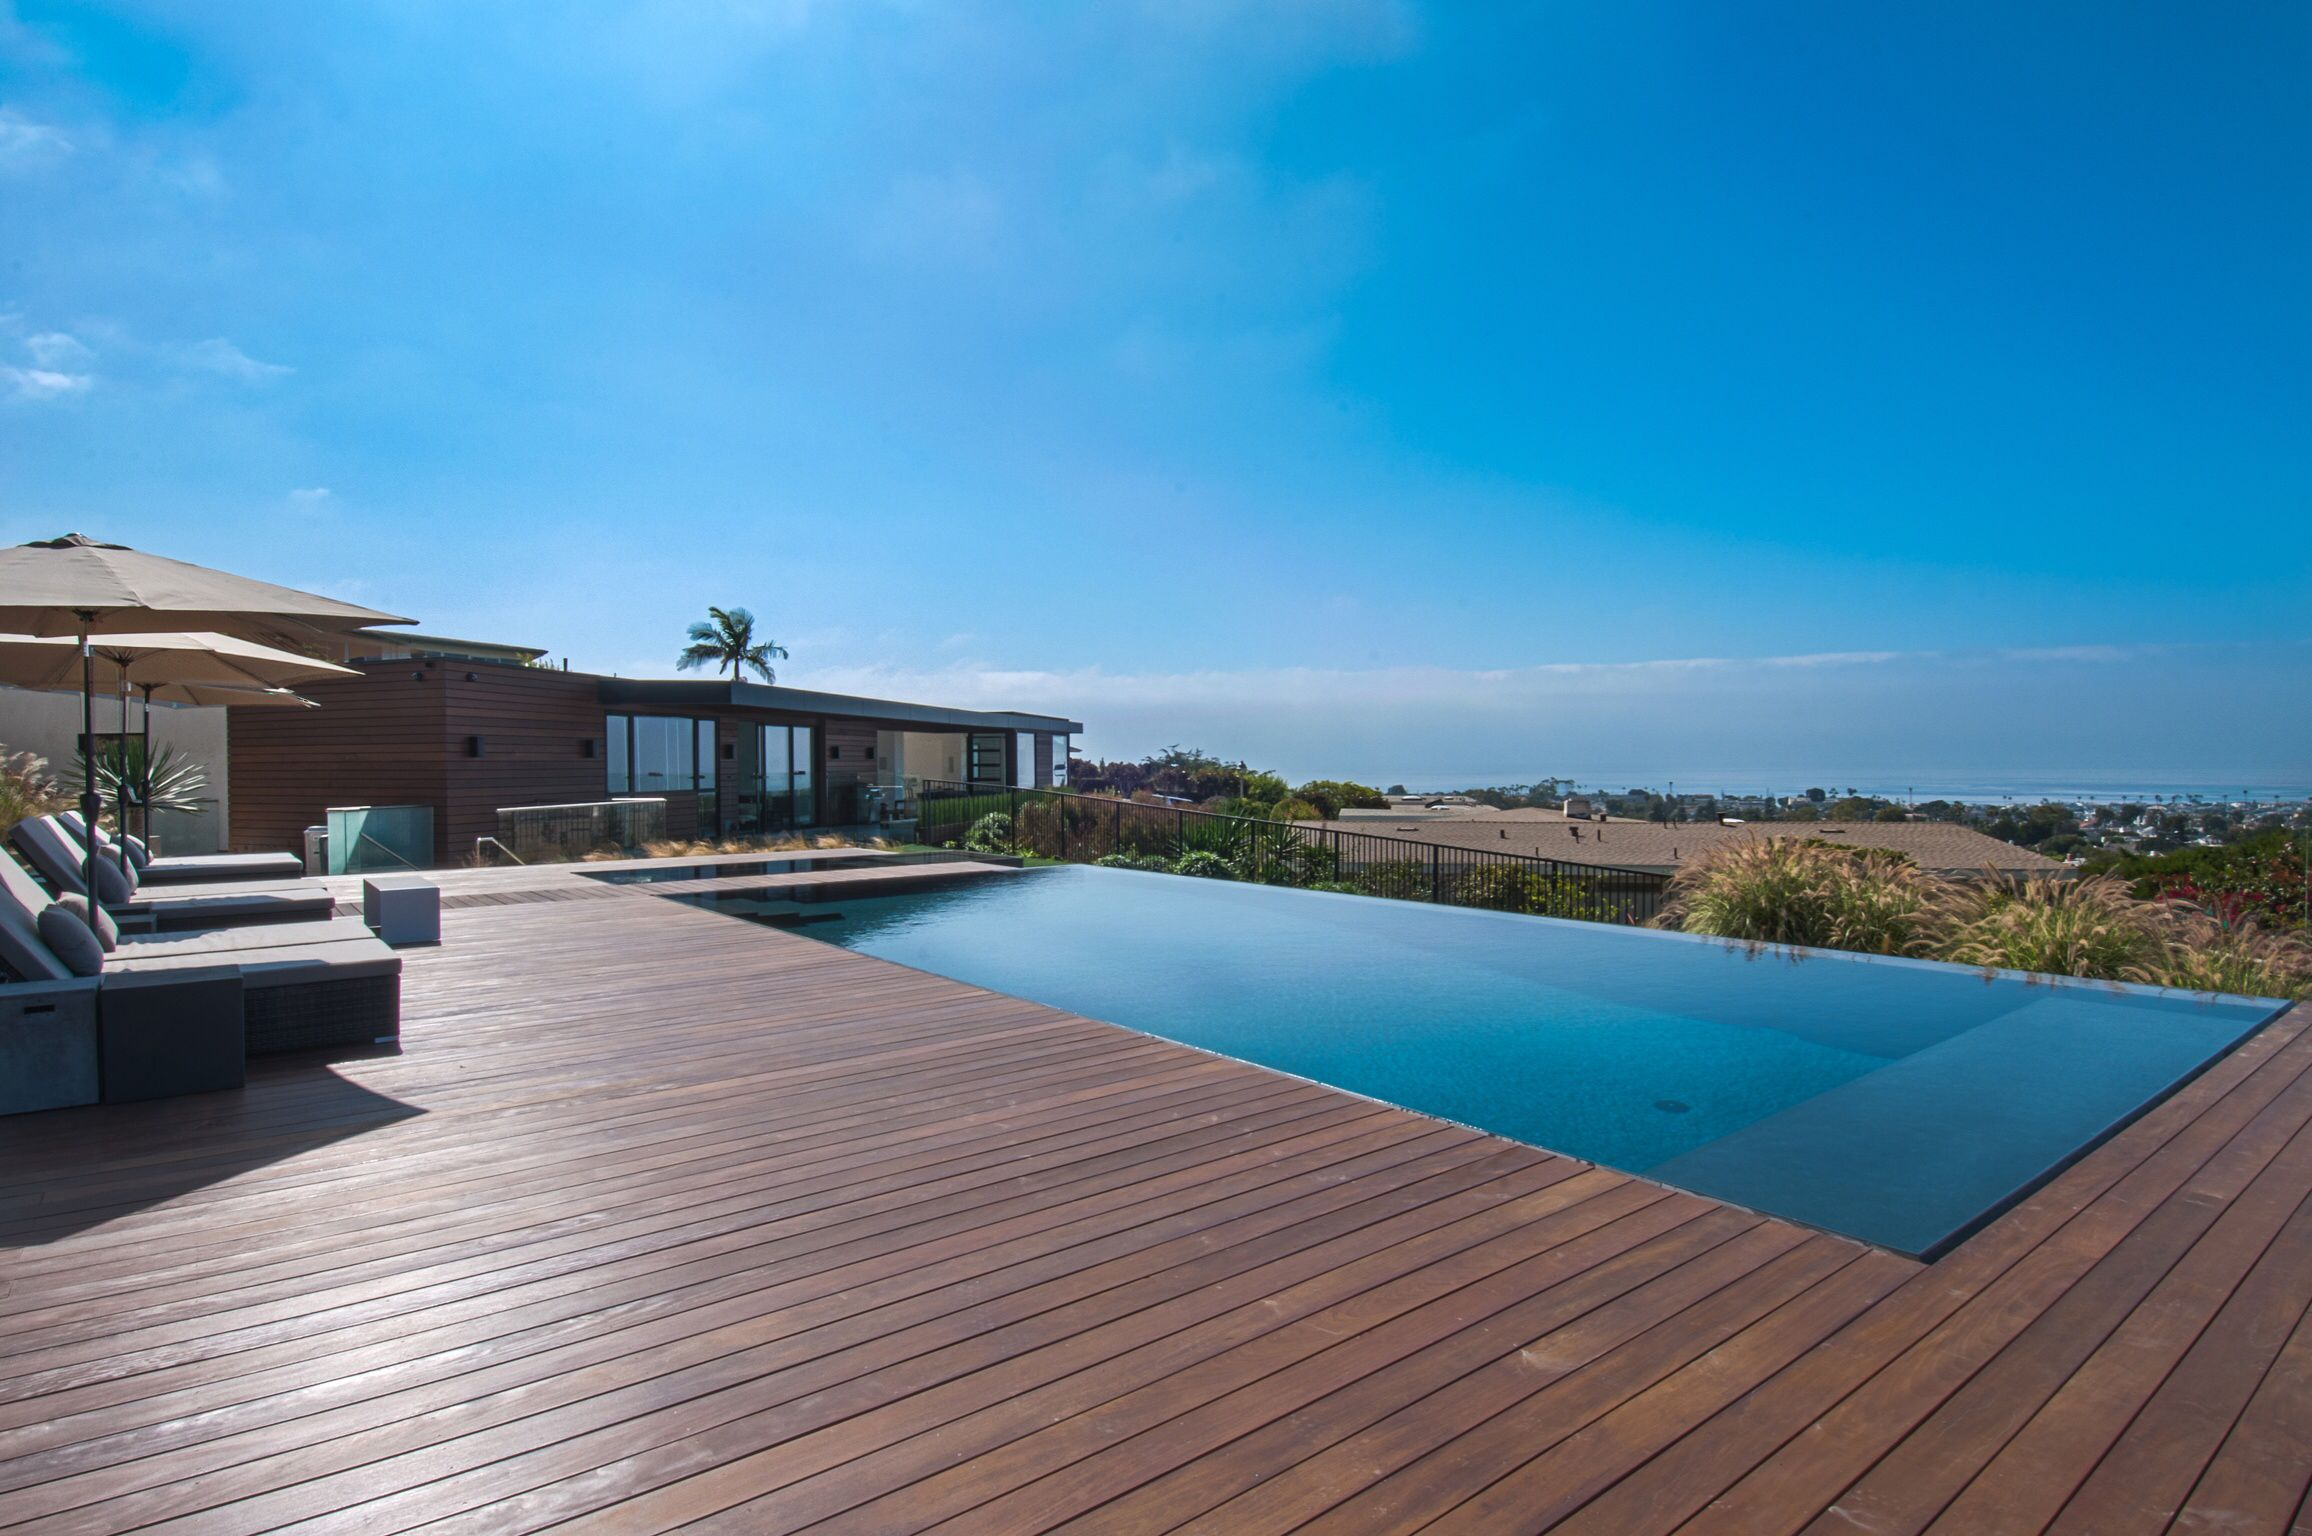 Stunning And Serene Infinity Edge Pool And Jacuzzi With Ipe Wood Deck Modern Pools Custom Homes Pool